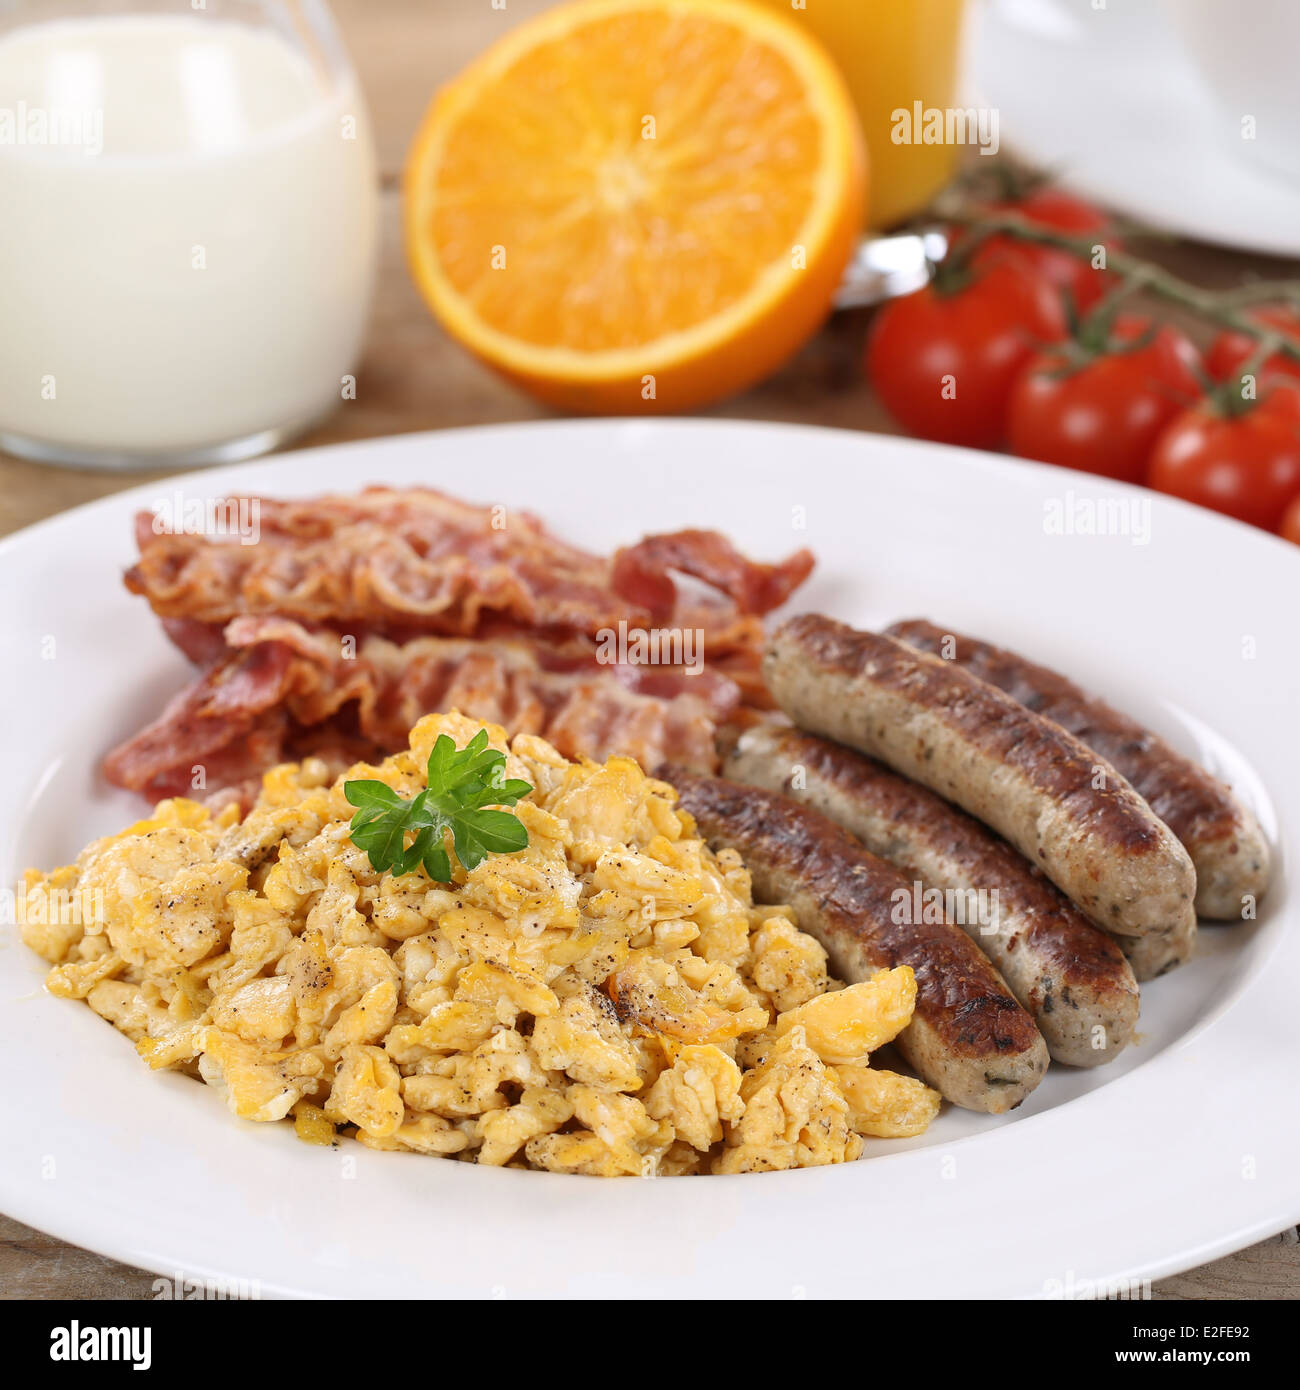 Meal with scrambled eggs, sausages, bacon, oranges and milk - Stock Image